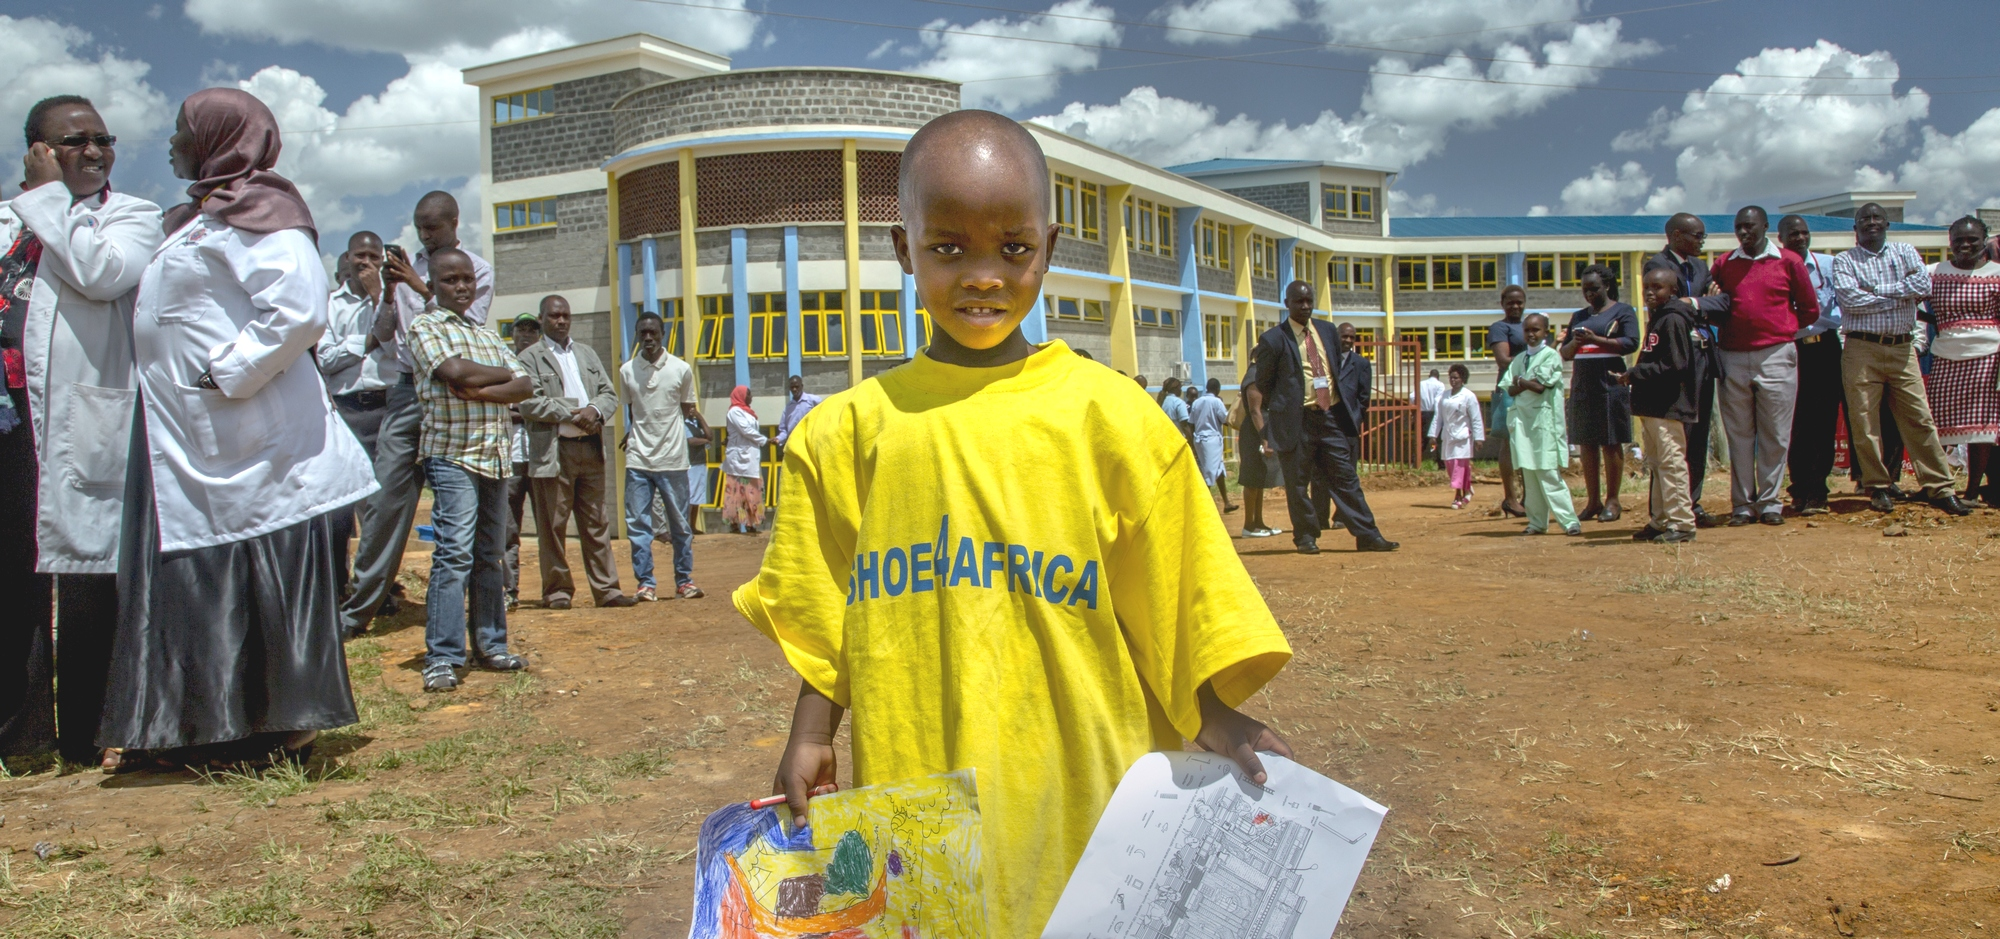 """The opening of Moi Teaching and Referral Hospital for Children in Eldoret, Kenya's Rift Valley. The project is donor funded and overseen in its entirity by Shoe4Africa, a foundation whose """"challenge is to listen and work with communities to better lives focusing on Health & Education"""" and the foundation's CEO Toby Tanser."""